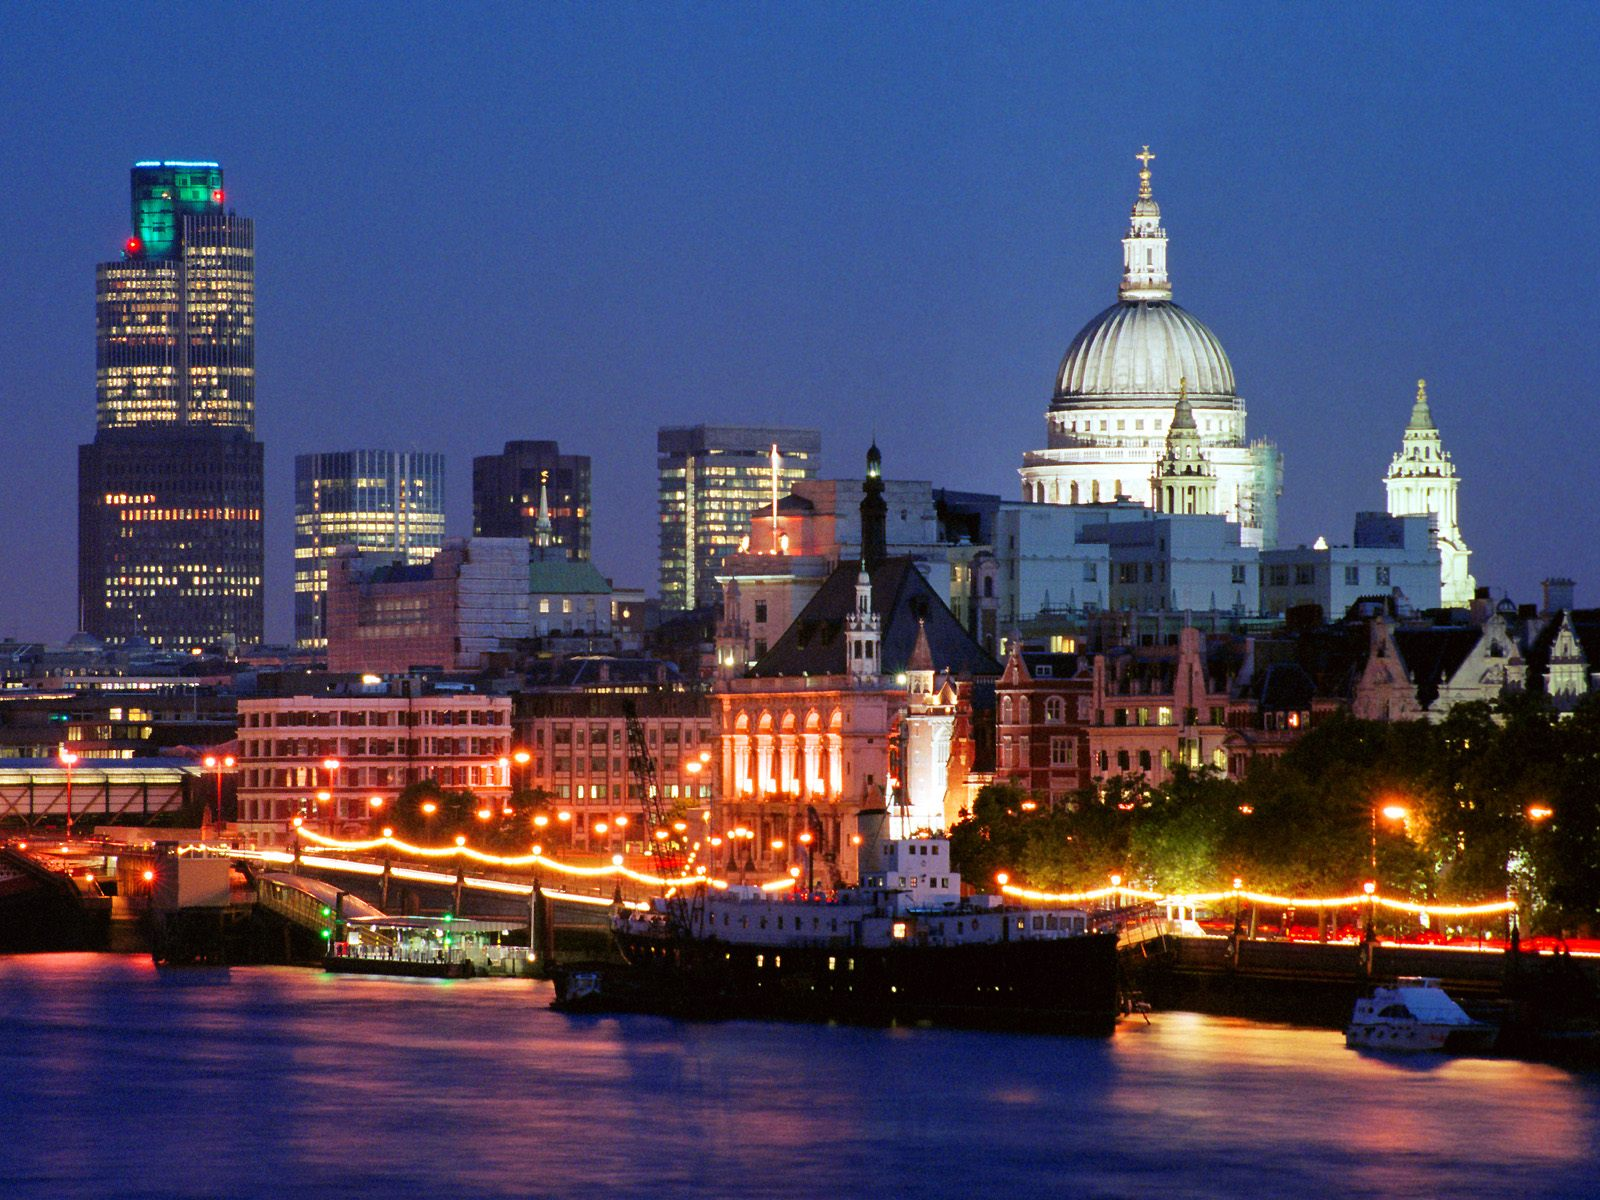 Great Britain images London England wallpaper photos 1600x1200